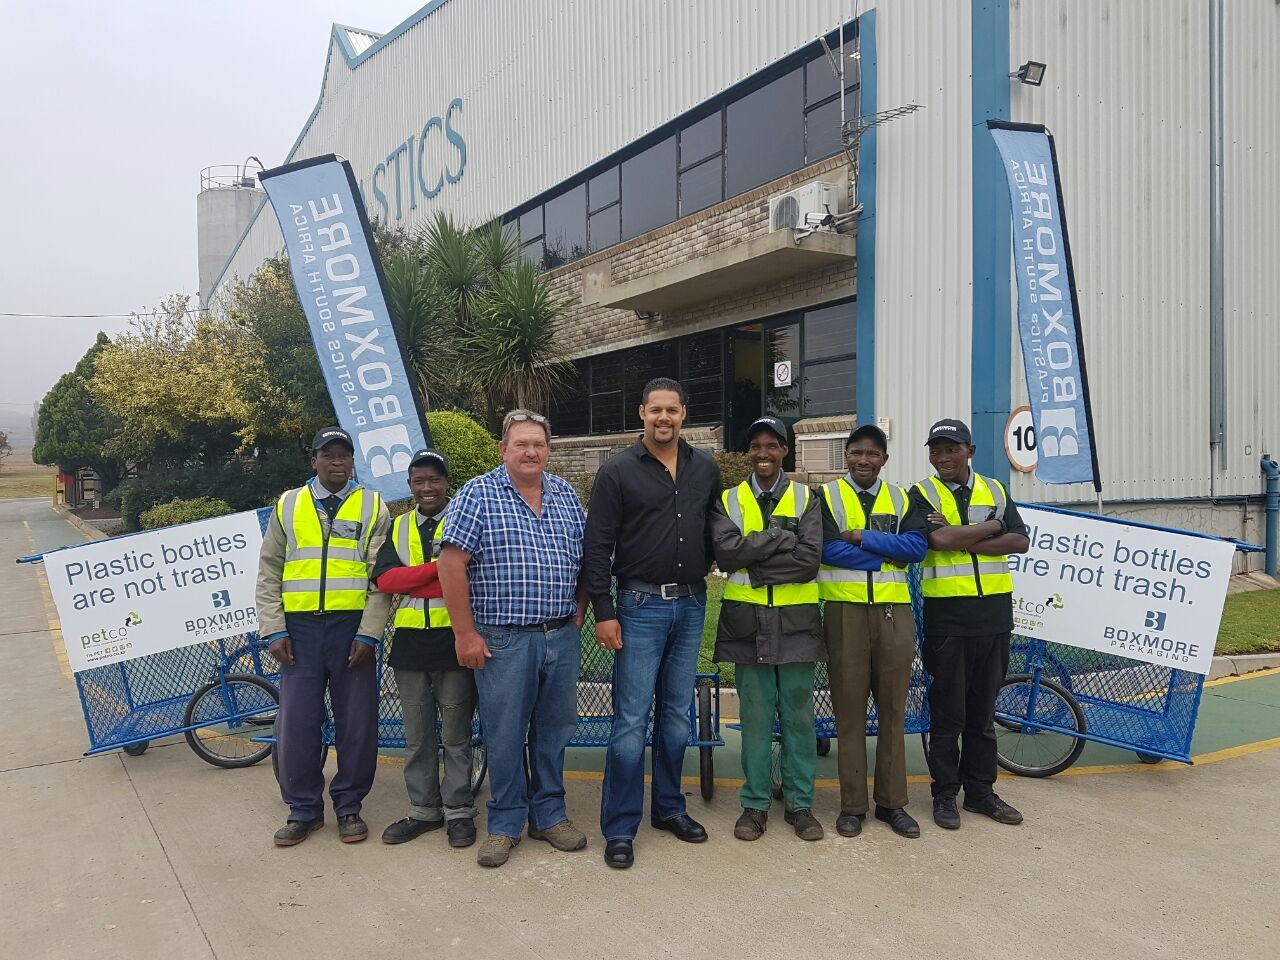 Joint venture between Boxmore and PETCO creates jobs and drives recycling